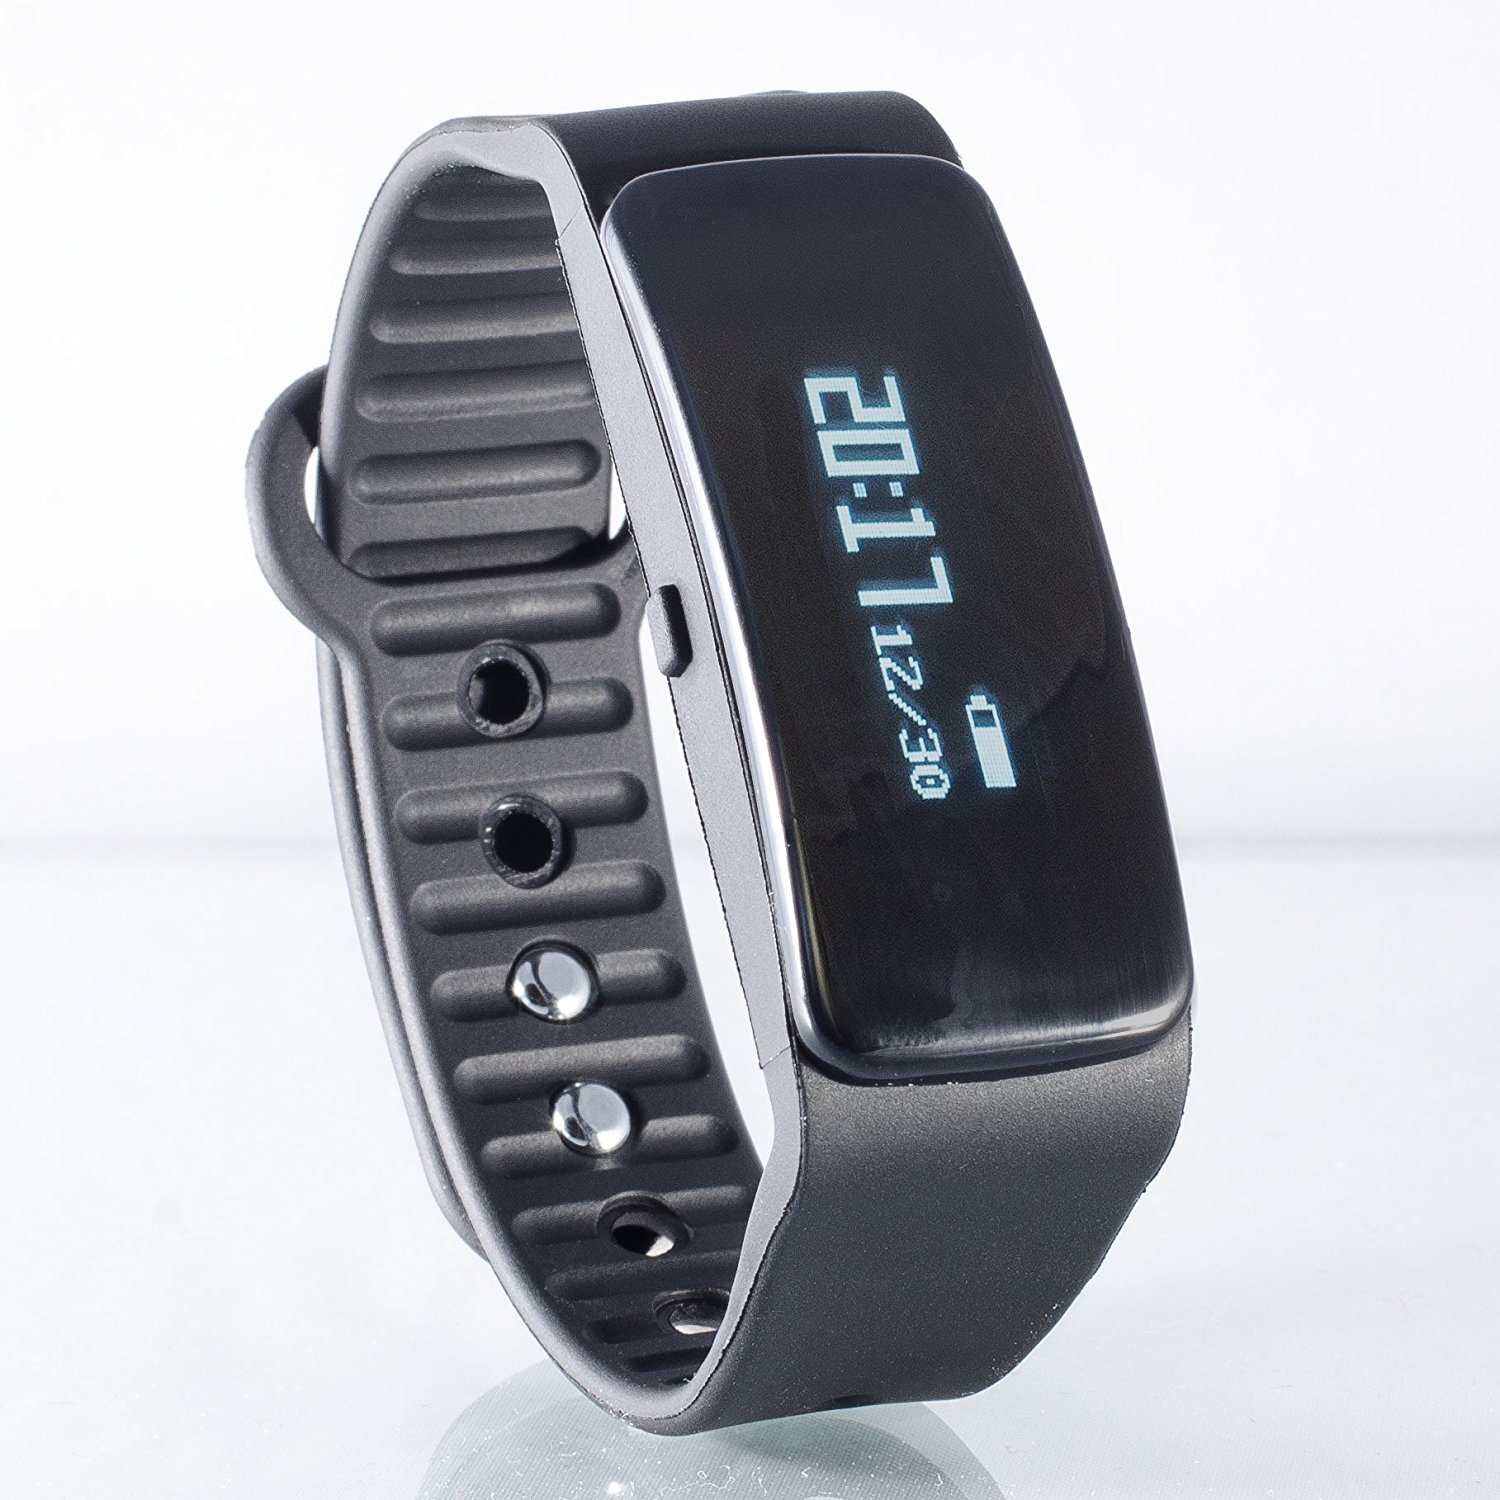 Fitness Tracker Smart Band Aractive w/Sleep Monitor, Calorie Counter, Pedometer, Bluetooth & Call/SMS Reminder - helps you track your activity – Stylish Black.